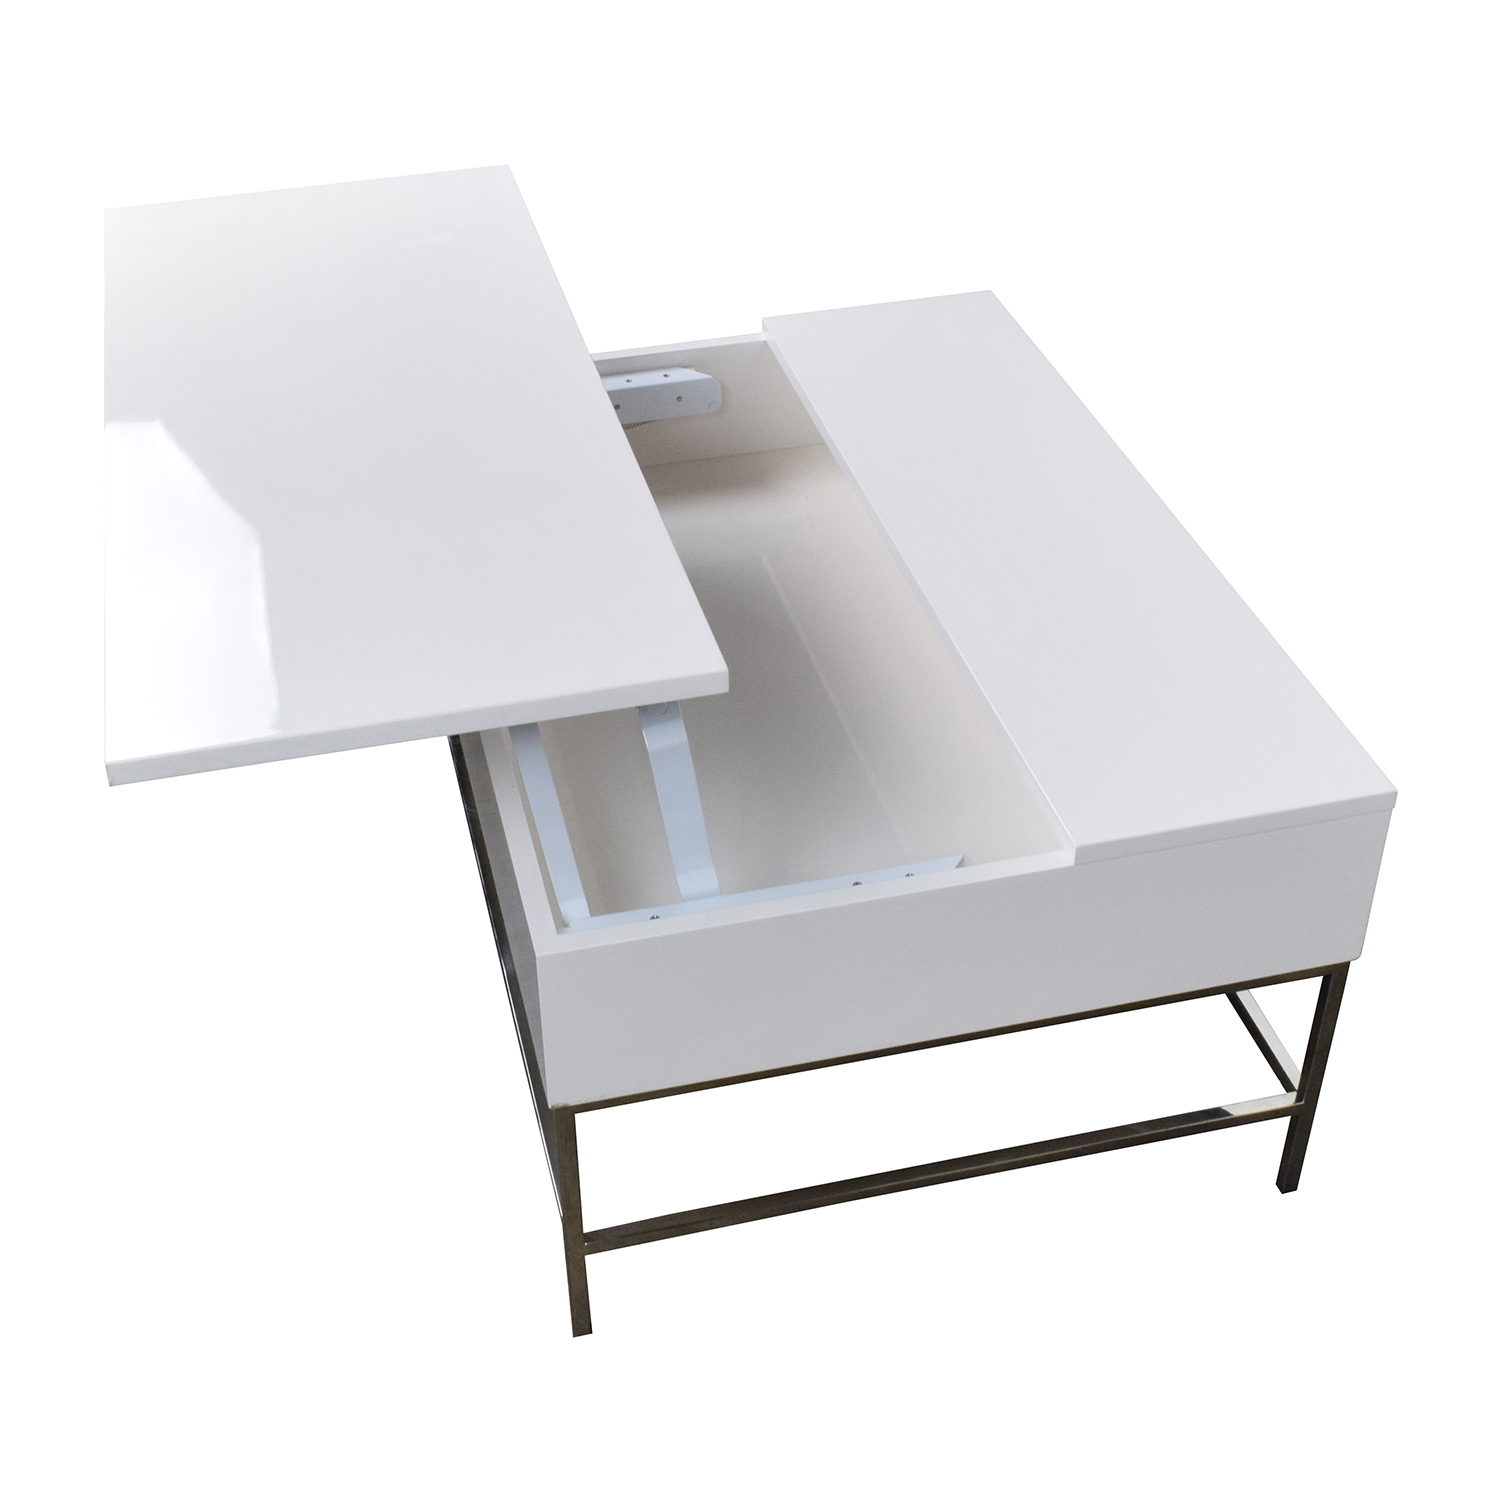 34 off west elm storage table west elm white lacquer wood coffee table tables White wood coffee table